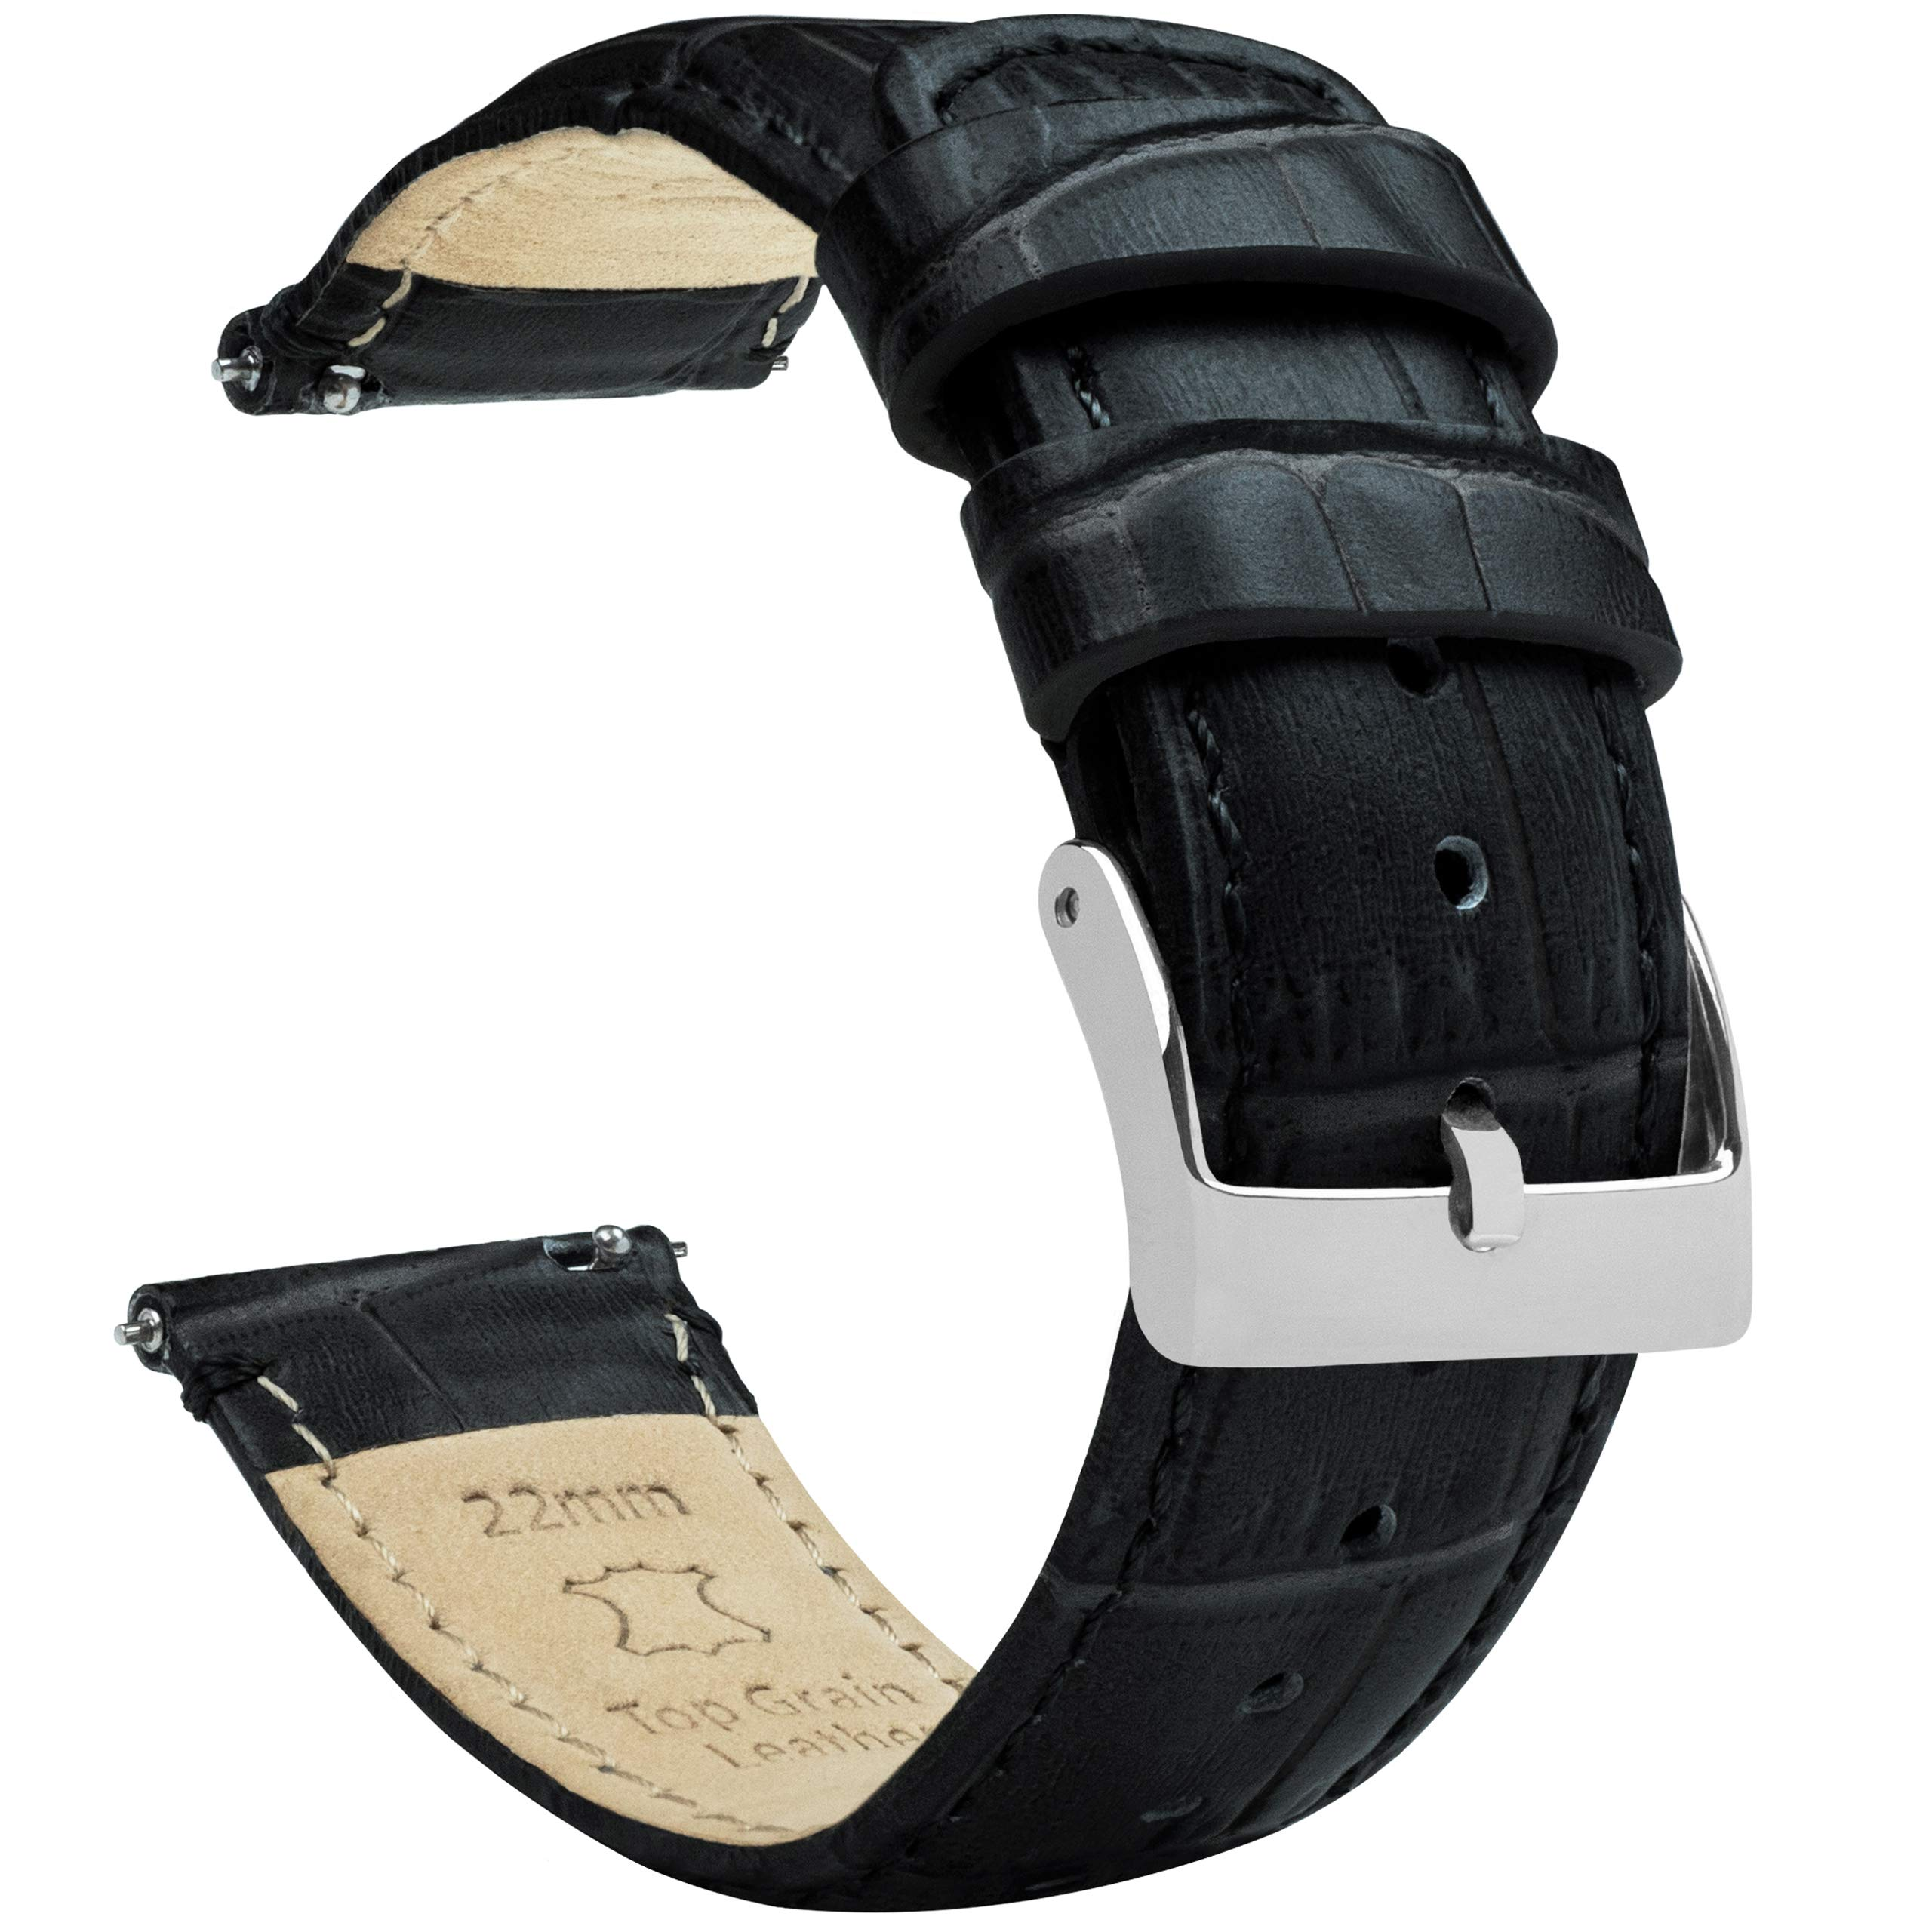 Barton Alligator Grain - Quick Release Leather Watch Bands - Choose Color Length & Width - 16mm 18mm 19mm 20mm 21mm 22mm 23mm or 24mm Standard or Long